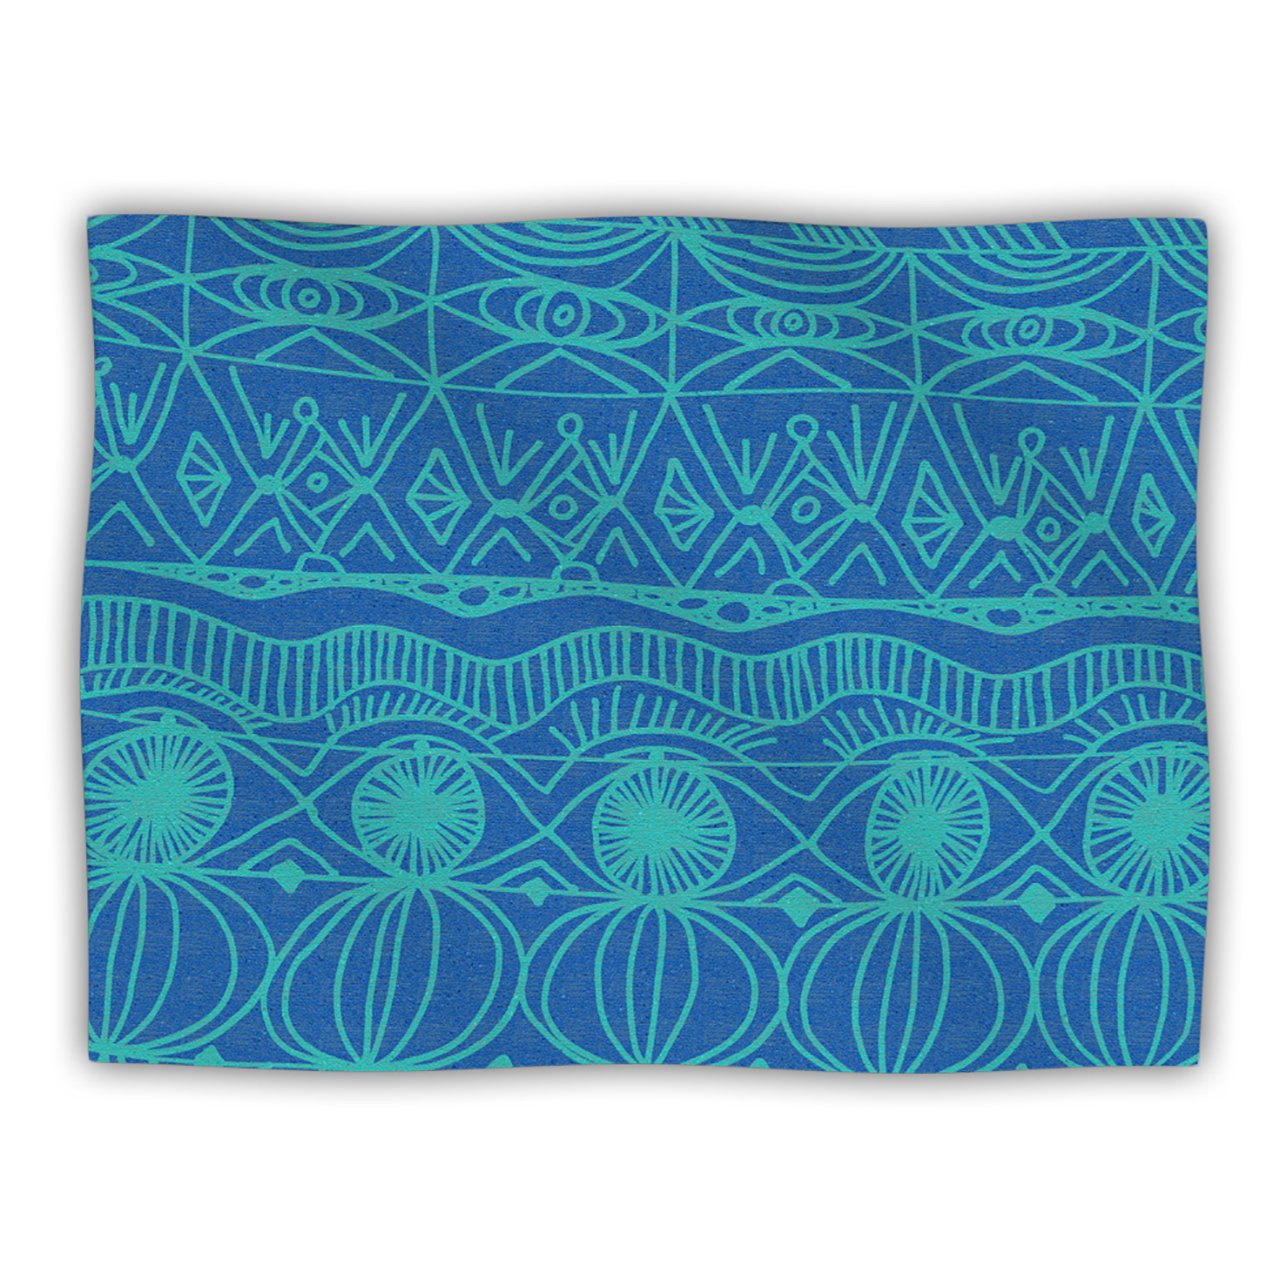 Kess InHouse Catherine Holcombe Beach Blanket Confusion Dog Blanket, 60 by 50-Inch